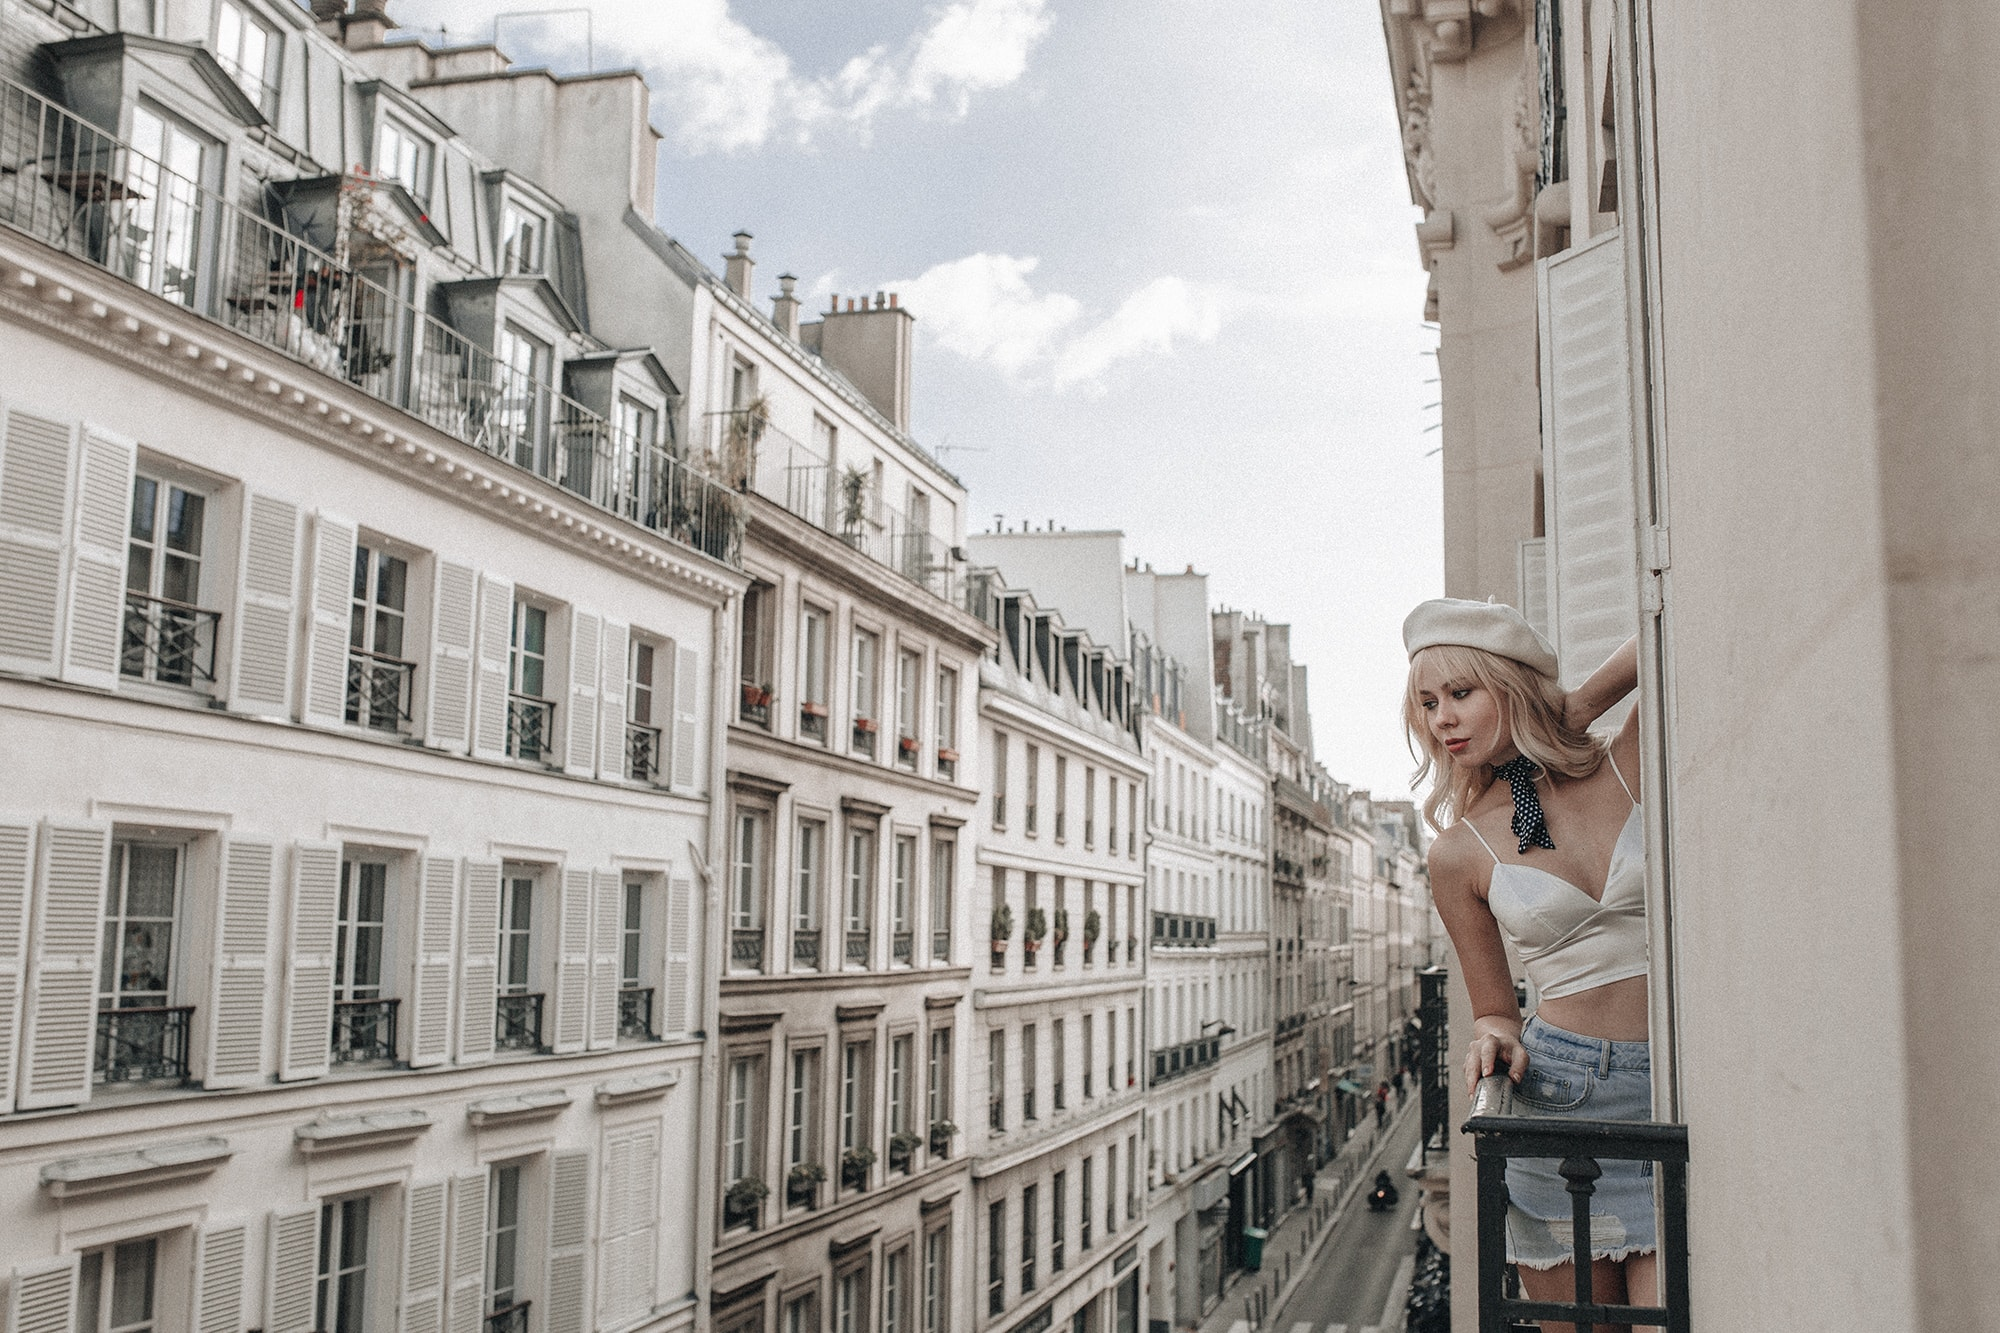 Sarah Loven - Jetsetlust.com // Charming Paris Flat AirBnB // Paris Travel Guide: Where to Stay